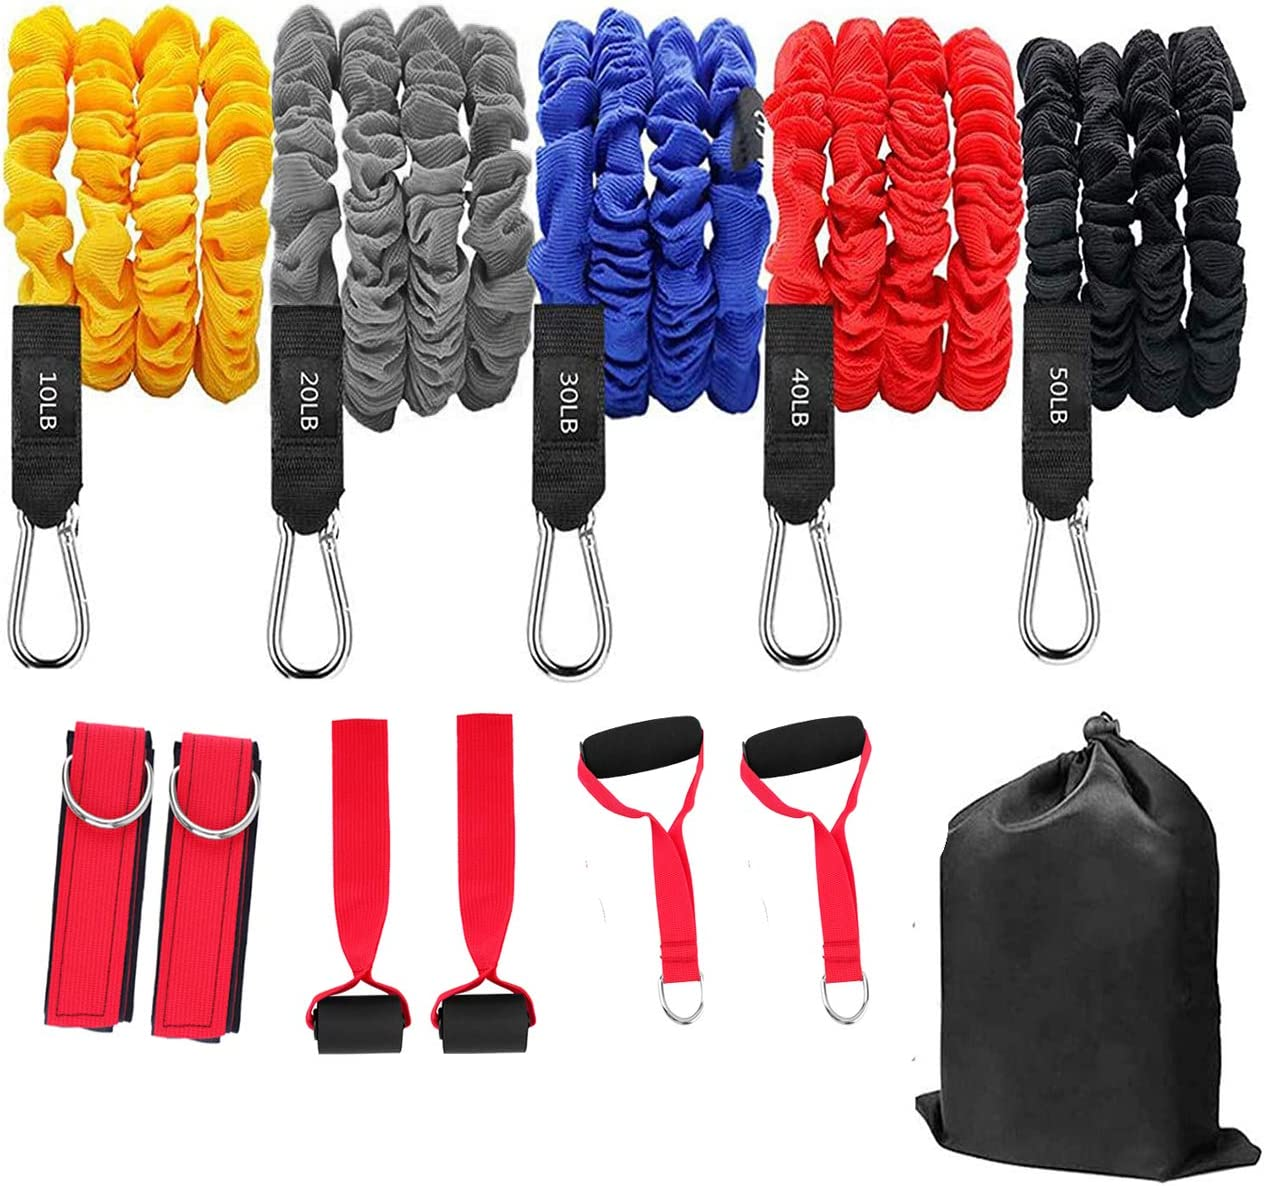 12PCS Resistance Bands Set,Exercise Bands with Door Anchor,Resistance Training,Physical,Home Workout,Yoga Stackable Up to 150Lbs